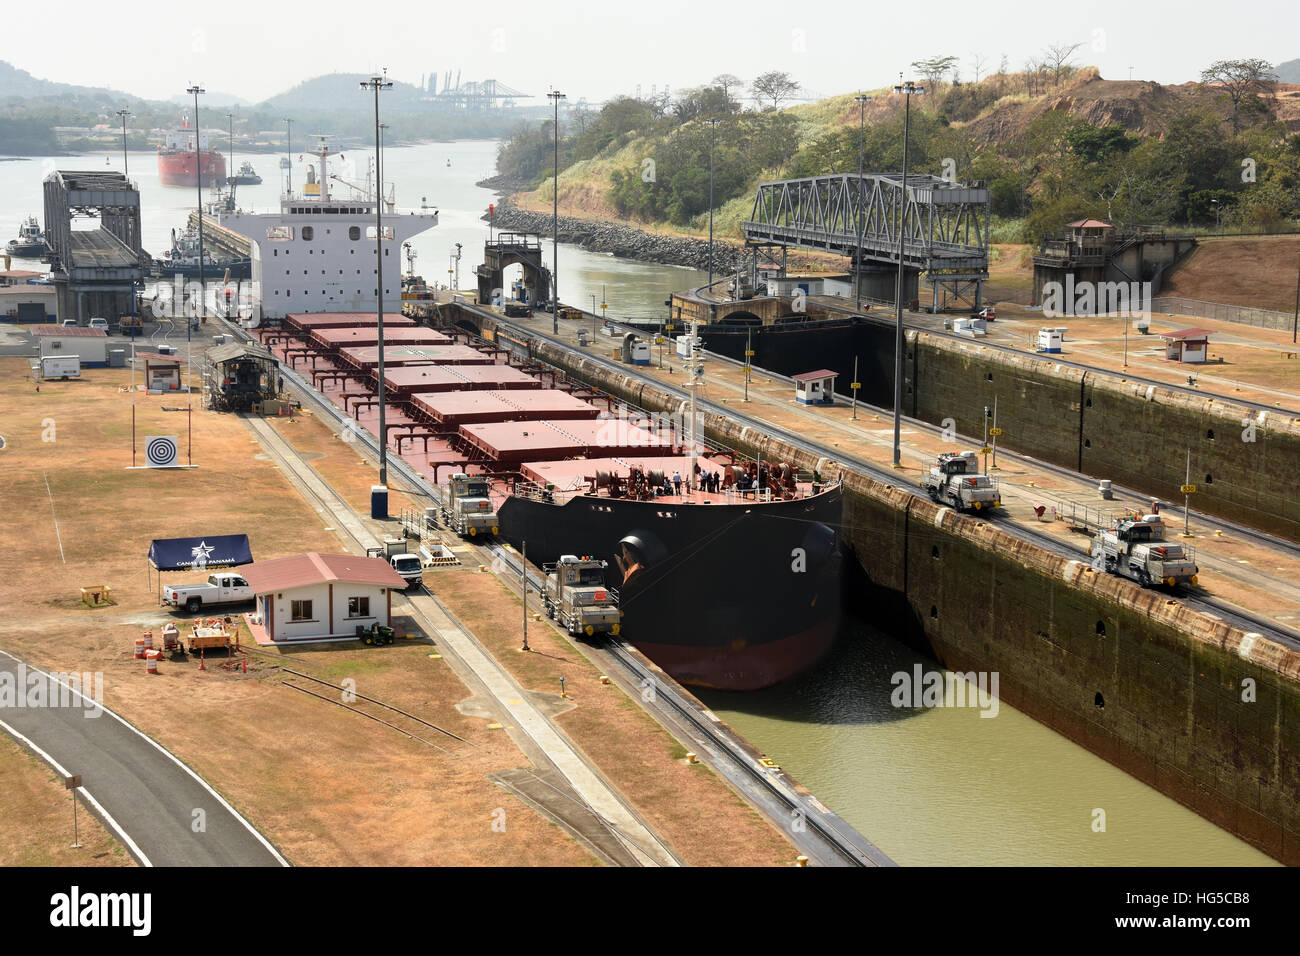 Electric mules guiding Panamax ship through Miraflores Locks on the Panama Canal, Panama, Central America - Stock Image